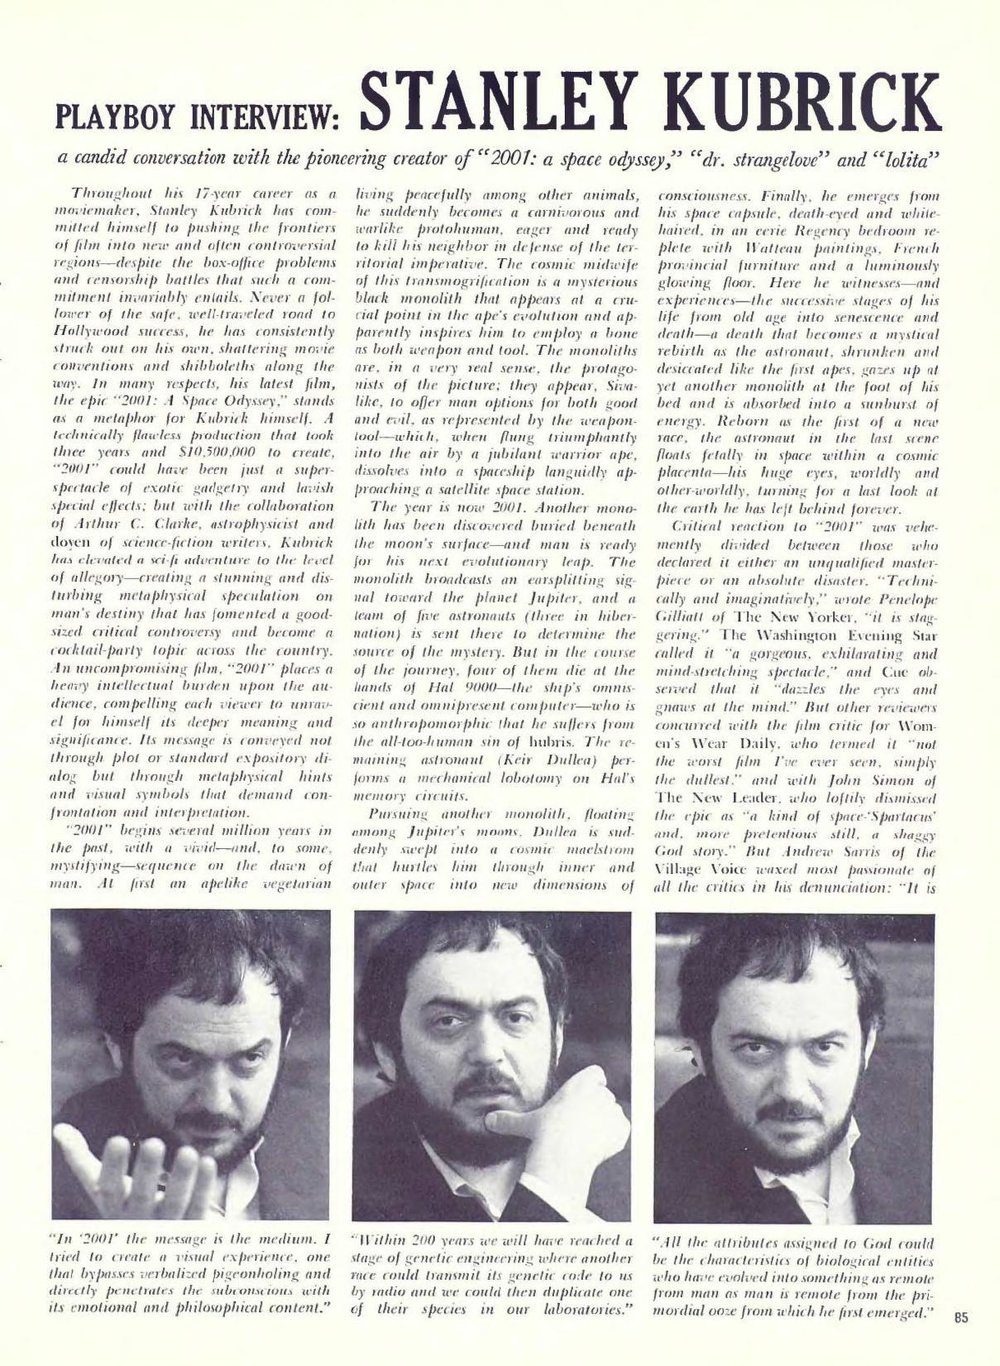 cinephiliabeyond :     Read and be grateful:  Stanley Kubrick—The Complete 1968 Playboy Interview .           PDF     Plain Text     DAISY     ePub     Send to Kindle     More information on  archive.org      Playboy: Thanks to those special effects,  2001  is  undoubtedly the most graphic depiction of space flight in the history of  films—and yet you have admitted that you yourself refuse to fly, even  in a commercial jet liner. Why?  Kubrick: I suppose it comes down to a rather awesome  awareness of mortality. Our ability, unlike the other animals, to  conceptualize our own end creates tremendous psychic strains within us;  whether we like to admit it or not, in each man's chest a tiny ferret of  fear at this ultimate knowledge gnaws away at his ego and his sense of  purpose. We're fortunate, in a way, that our body, and the fulfillment  of its needs and functions, plays such an imperative role in our lives;  this physical shell creates a buffer between us and the mind-paralyzing  realization that only a few years of existence separate birth from  death. If man really sat back and thought about his impending  termination, and his terrifying insignificance and aloneness in the  cosmos, he would surely go mad, or succumb to a numbing sense of  futility. Why, he might ask himself, should be bother to write a great  symphony, or strive to make a living, or even to love another, when he  is no more than a momentary microbe on a dust mote whirling through the  unimaginable immensity of space?   Those of us who are forced by their own sensibilities to view their  lives in this perspective—who recognize that there is no purpose they  can comprehend and that amidst a countless myriad of stars their  existence goes unknown and unchronicled—can fall prey all too easily  to the ultimate anomie… But even for those who lack the sensitivity to  more than vaguely comprehend their transience and their triviality, this  inchoate awareness robs life of meaning and purpose; it's why 